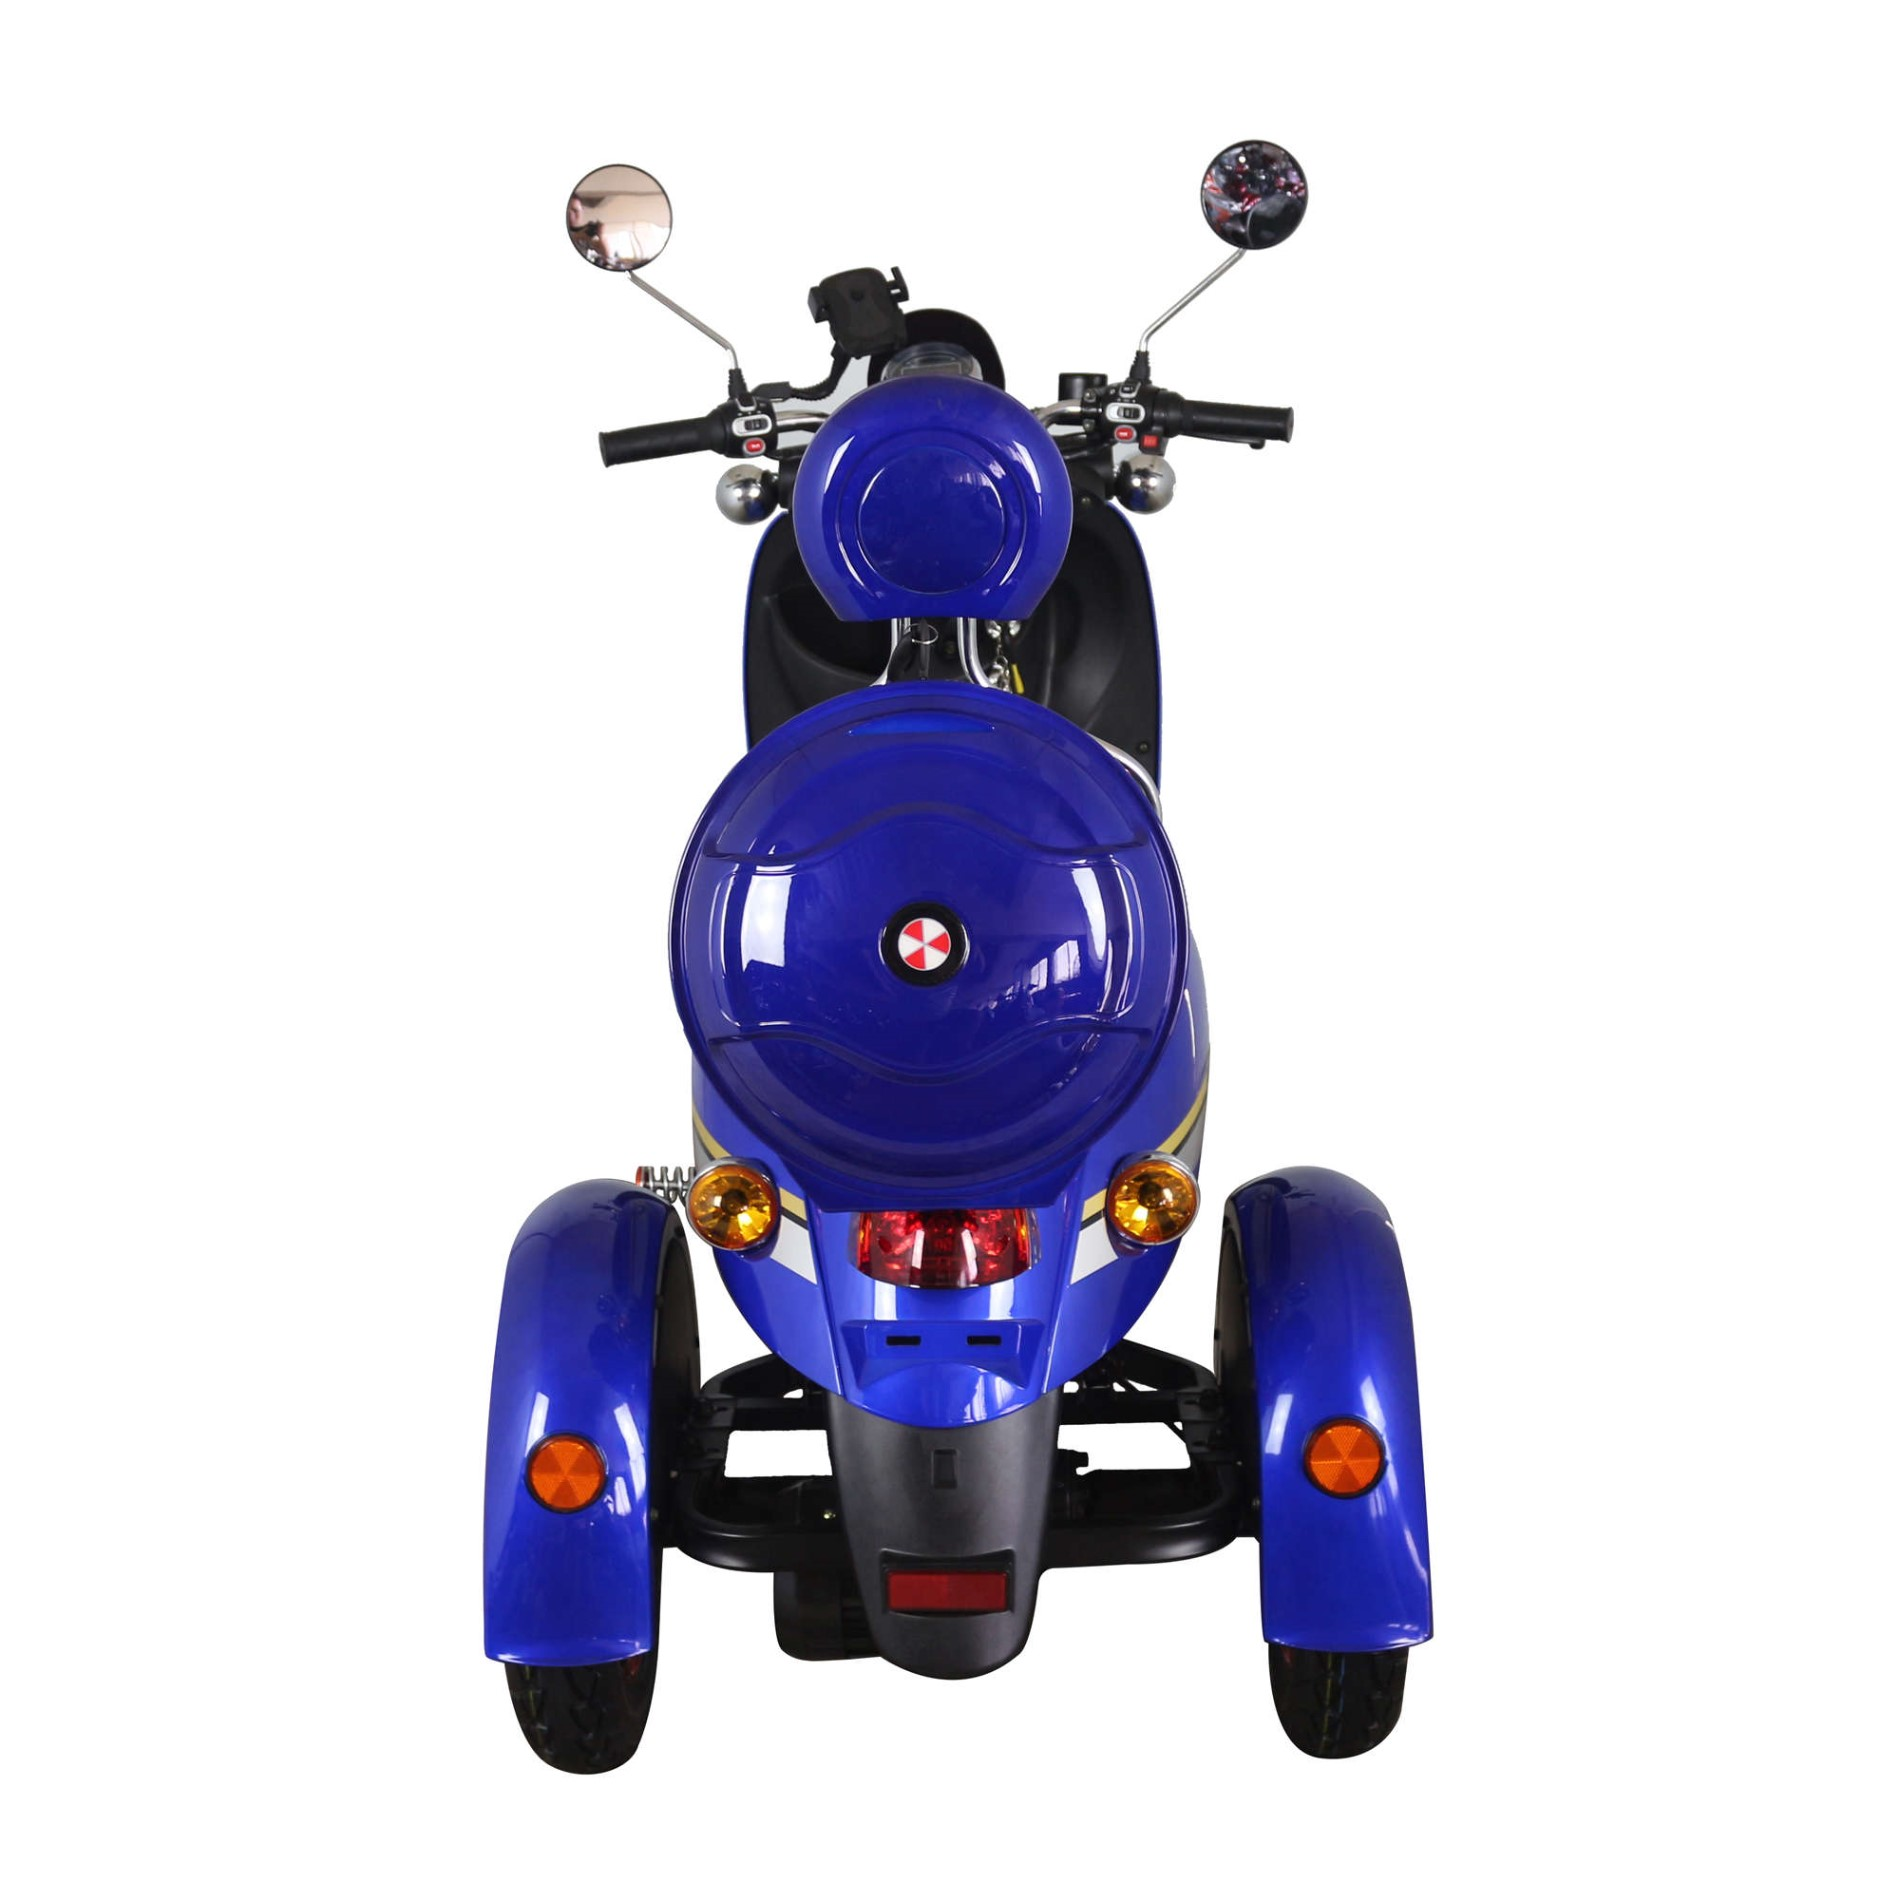 High quality Three Wheeled Vehicles Quotes,China Three Wheeled Vehicles Factory,Three Wheeled Vehicles Purchasing